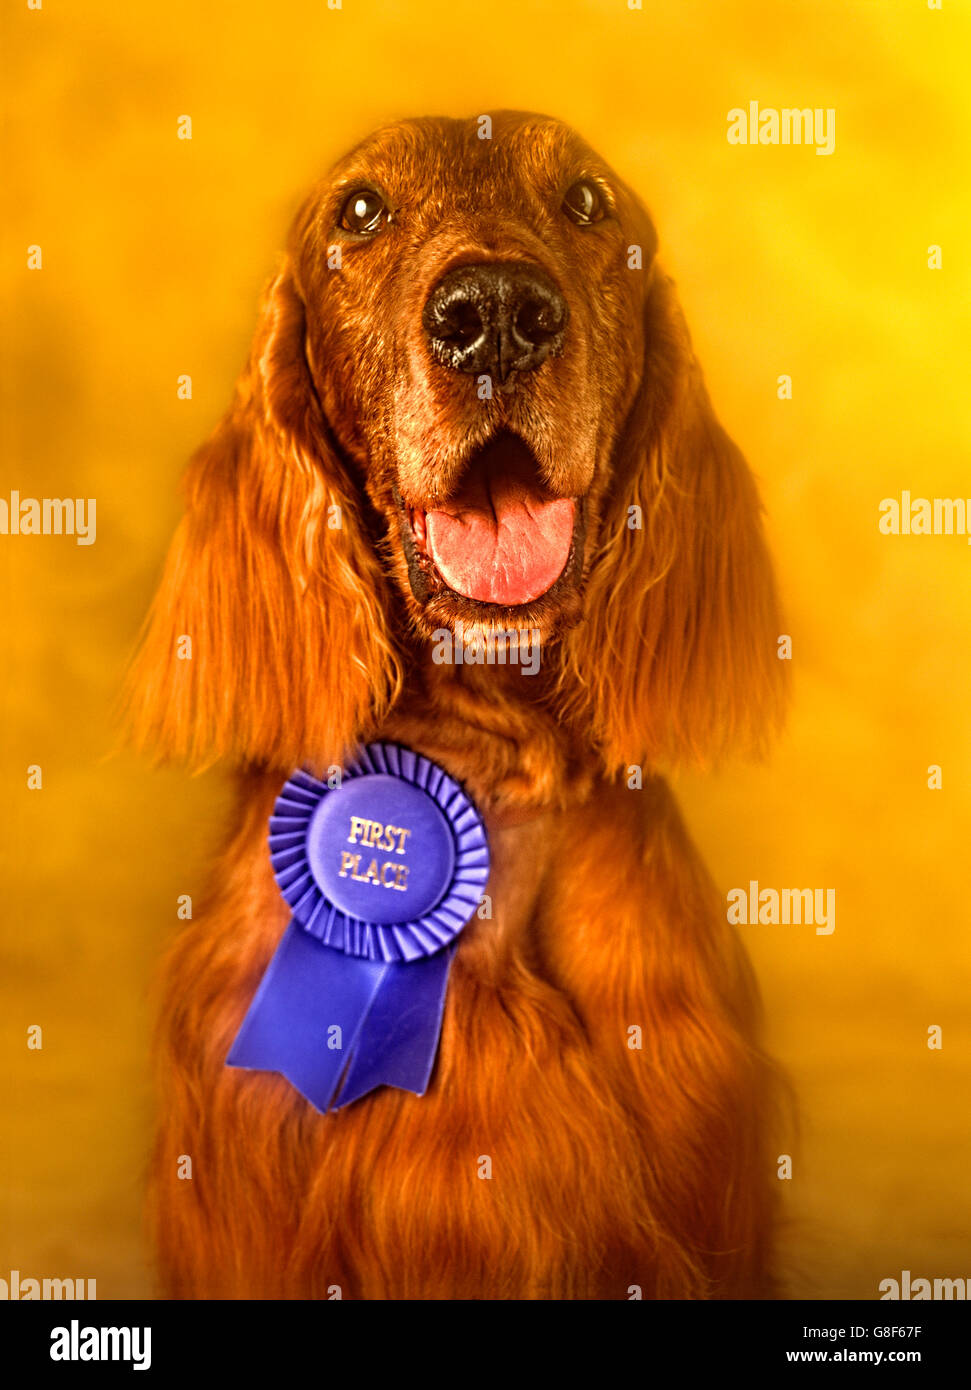 Portrait of Irish Setter close-up with award looking directly into camera - Stock Image